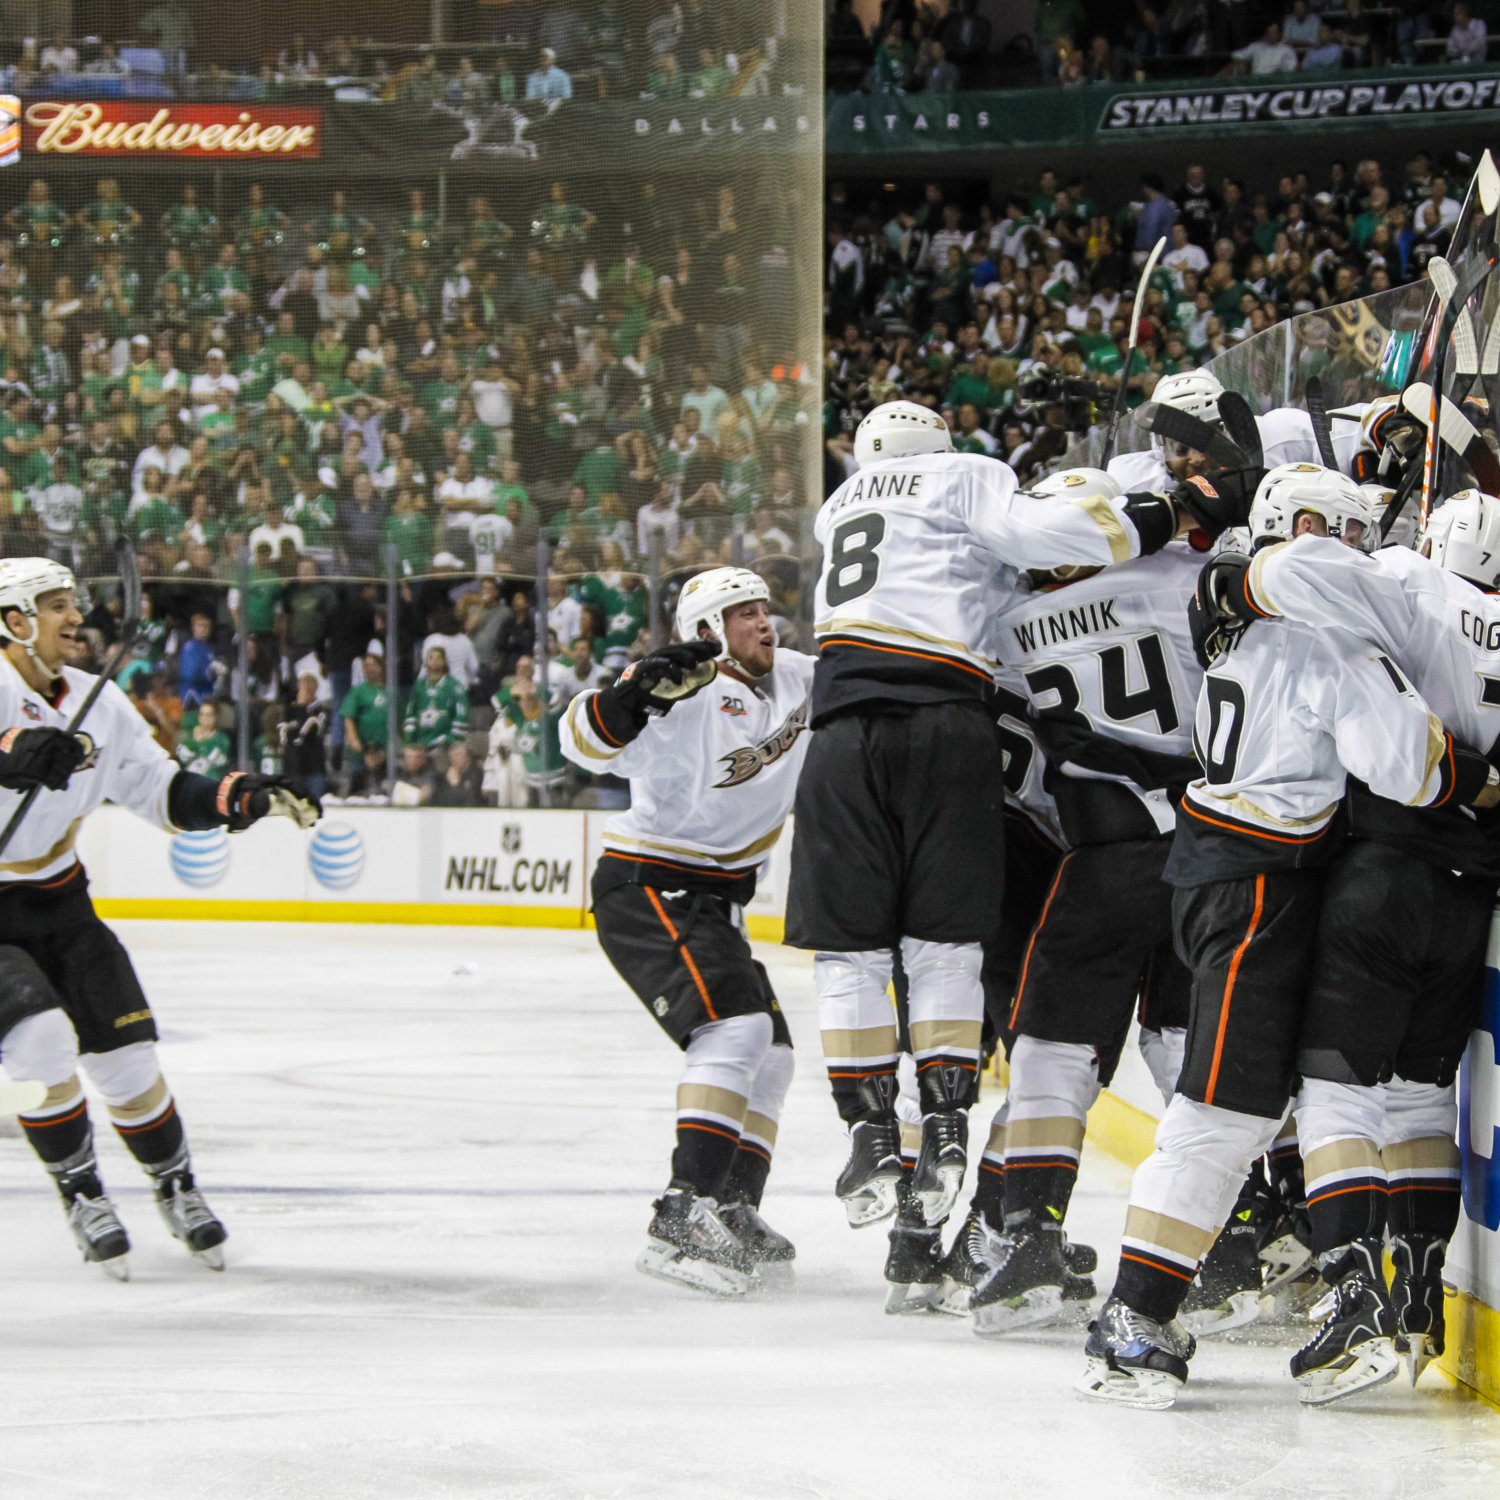 NHL Playoff Schedule 2014: Round 2 Dates, Game Times And